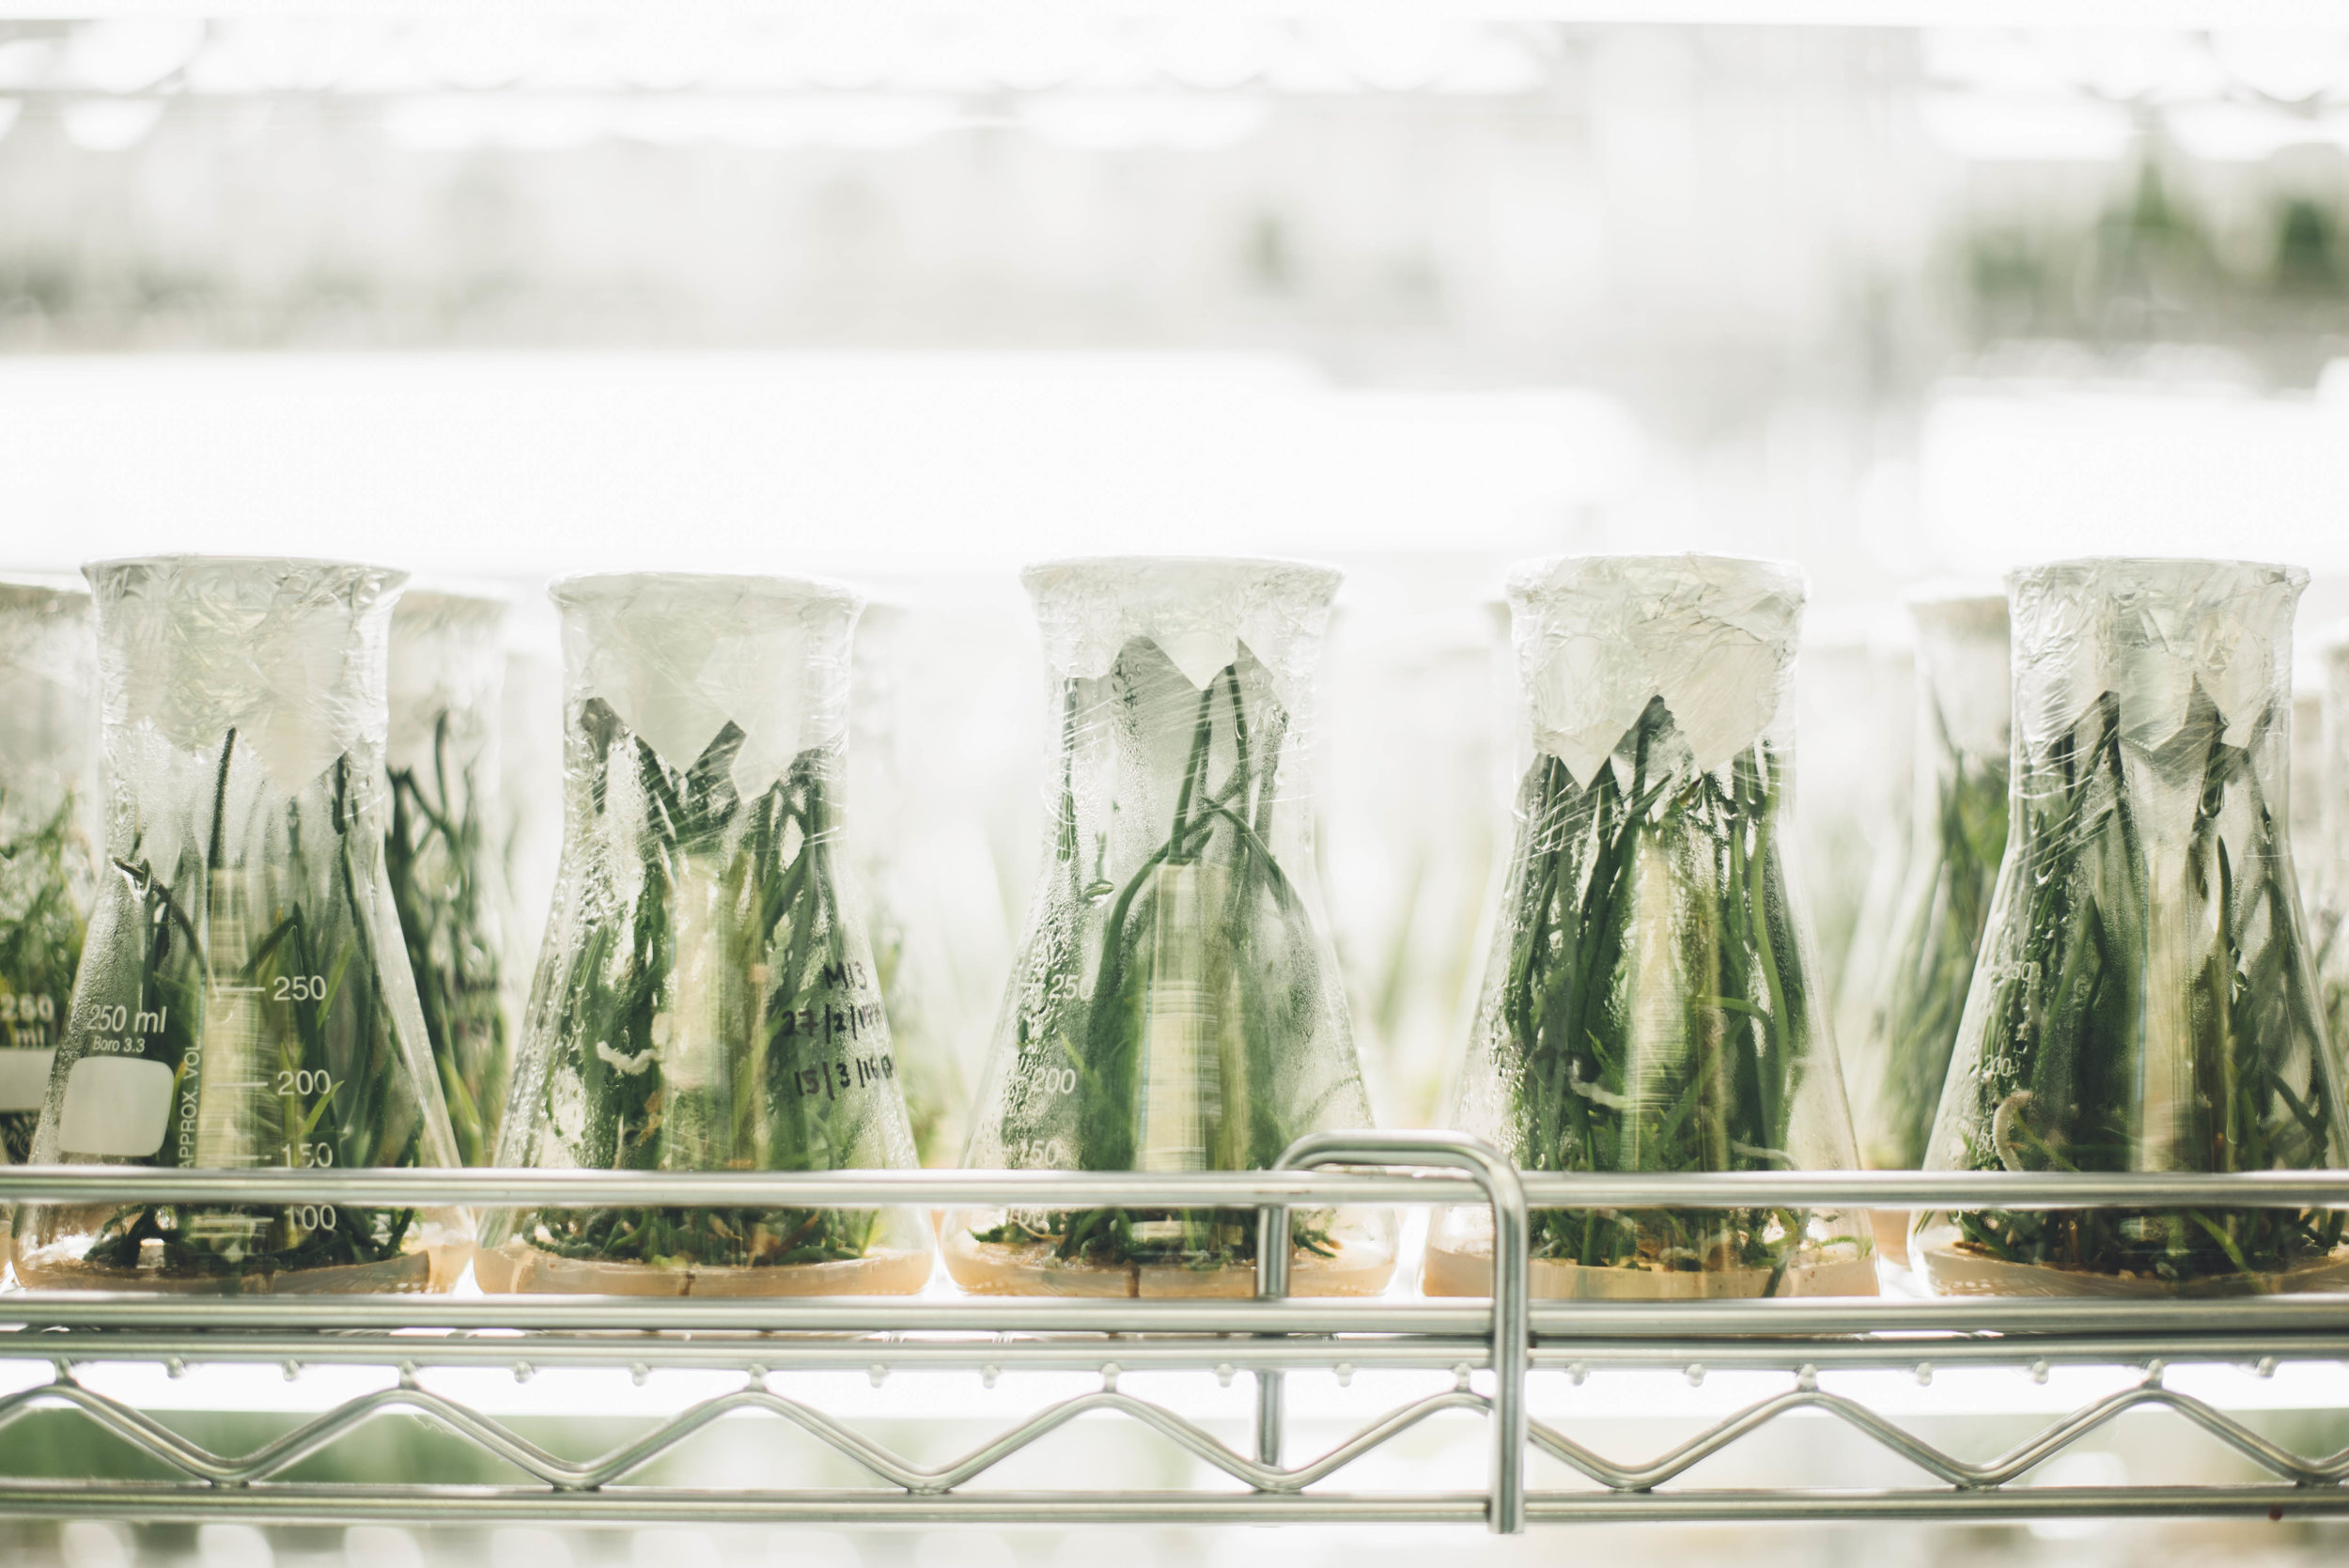 We can optimize the growth of algae in the lab, allowing us to maximize the amount of compounds we can harvest from them. Photo credit: Chuttersnap